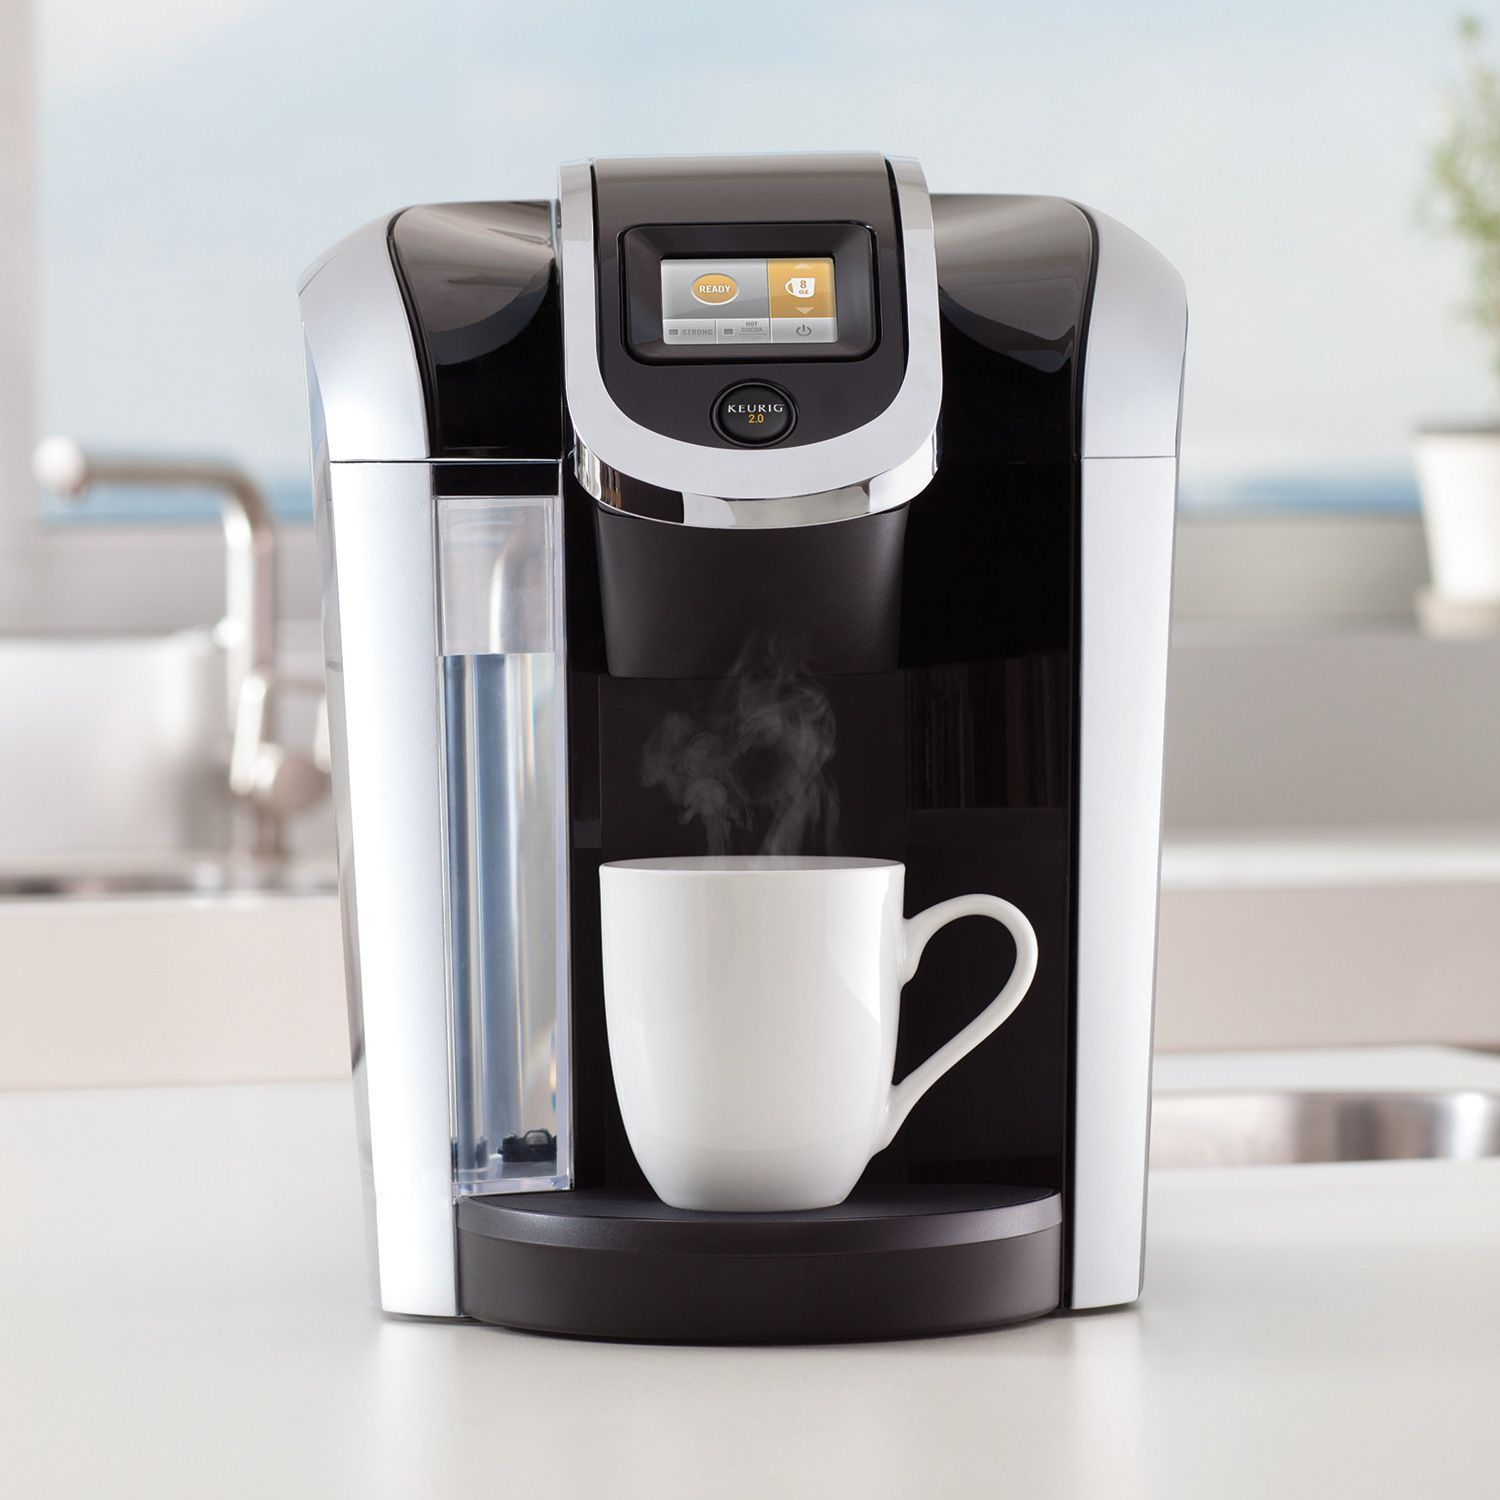 Keurig K425S Coffee Maker with 24 K-Cup Pods & Reusable K-Cup 2.0 Coffee Filter - Coffee Makers ...